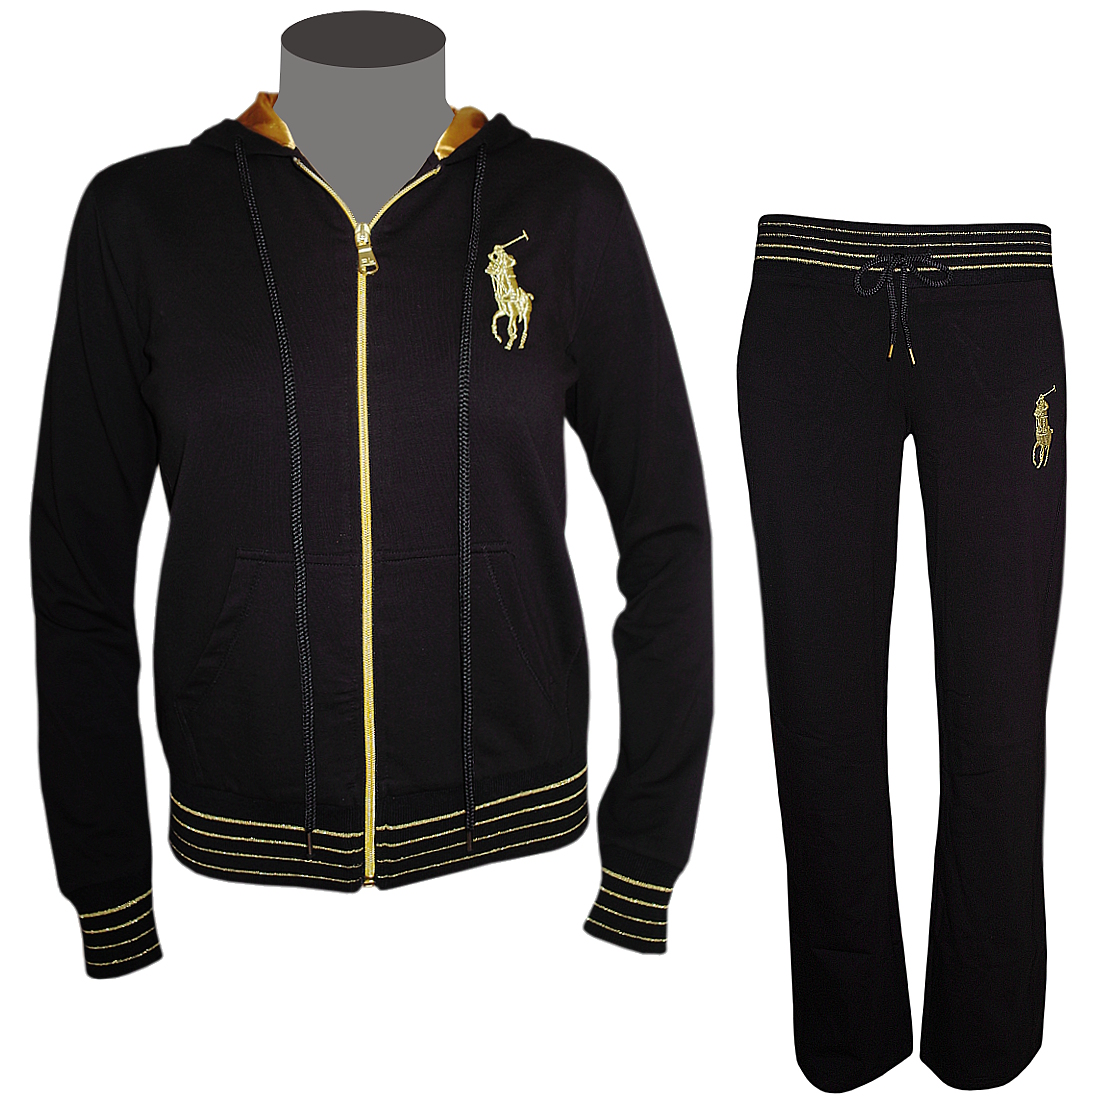 polo ralph lauren damen trainingsanzug schwarz gold jogginganzug ebay. Black Bedroom Furniture Sets. Home Design Ideas